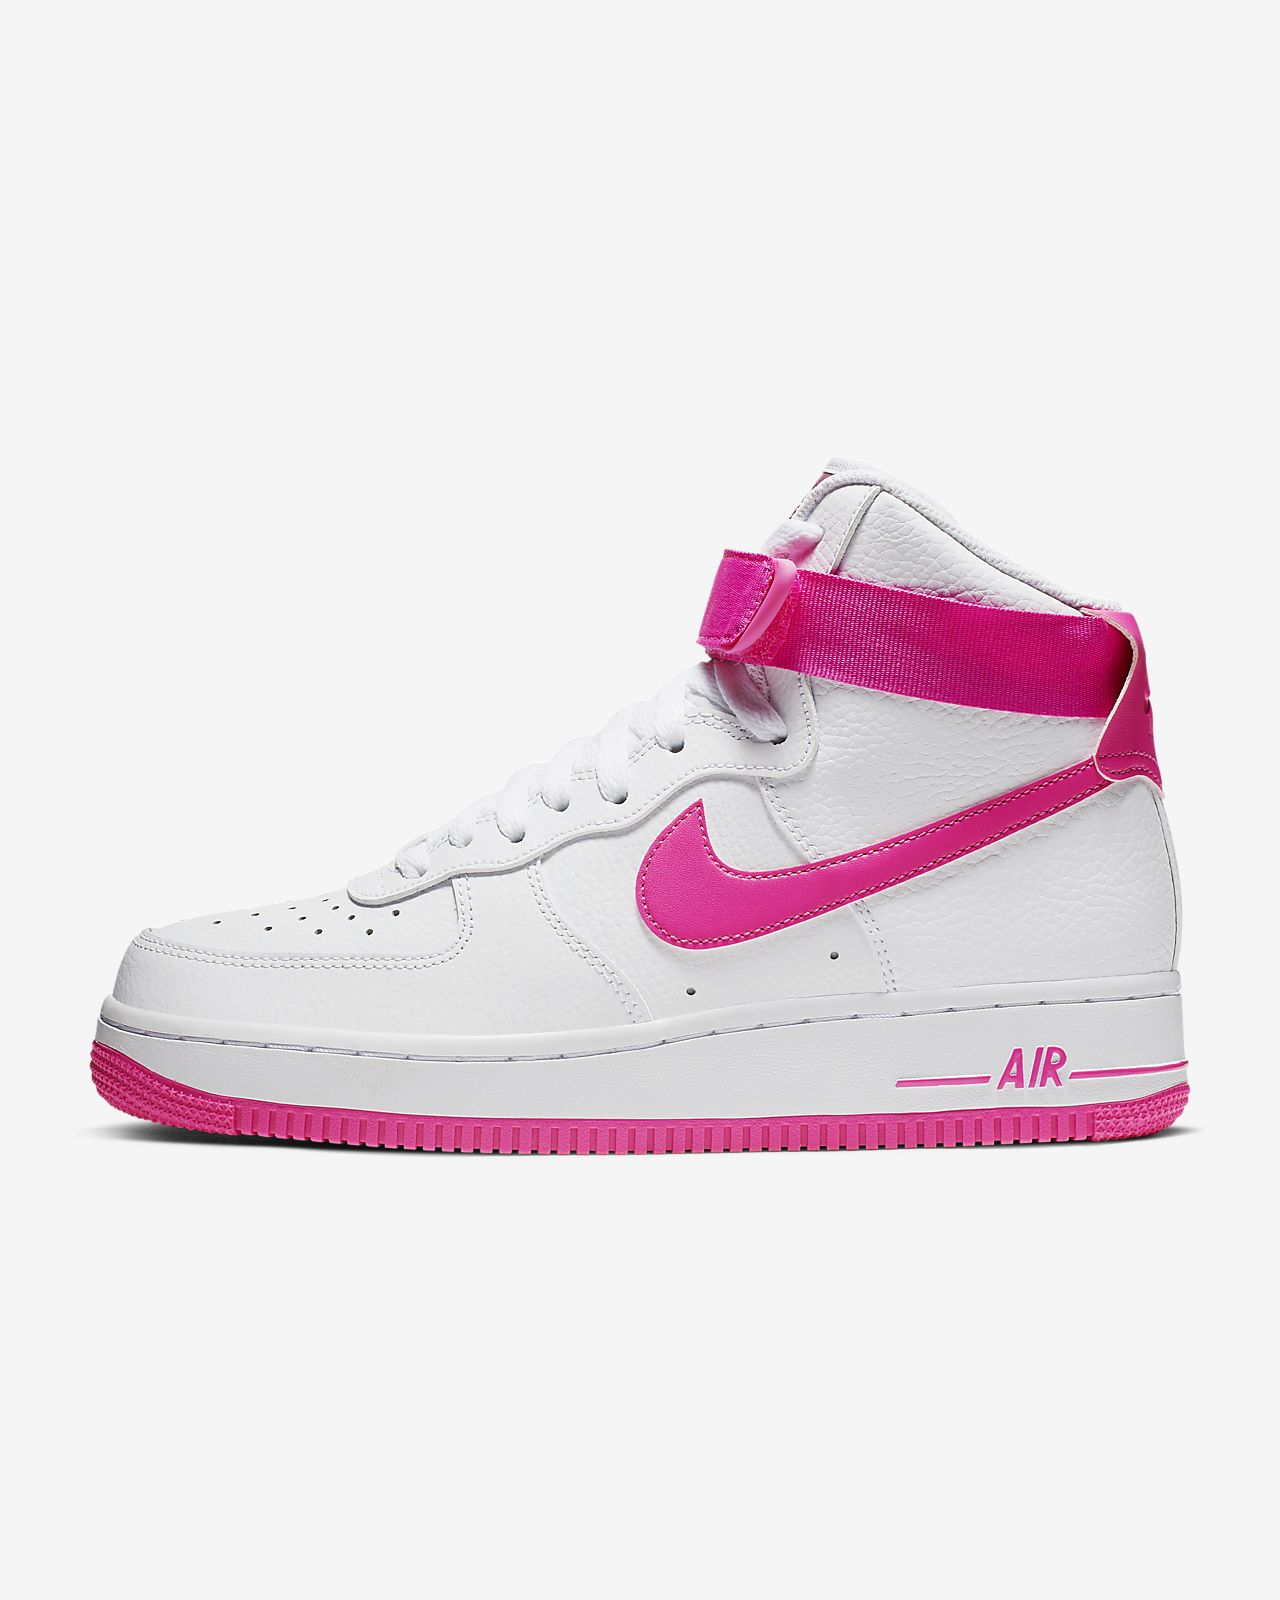 Nike Air Force 1 High 08 LE Damenschuh